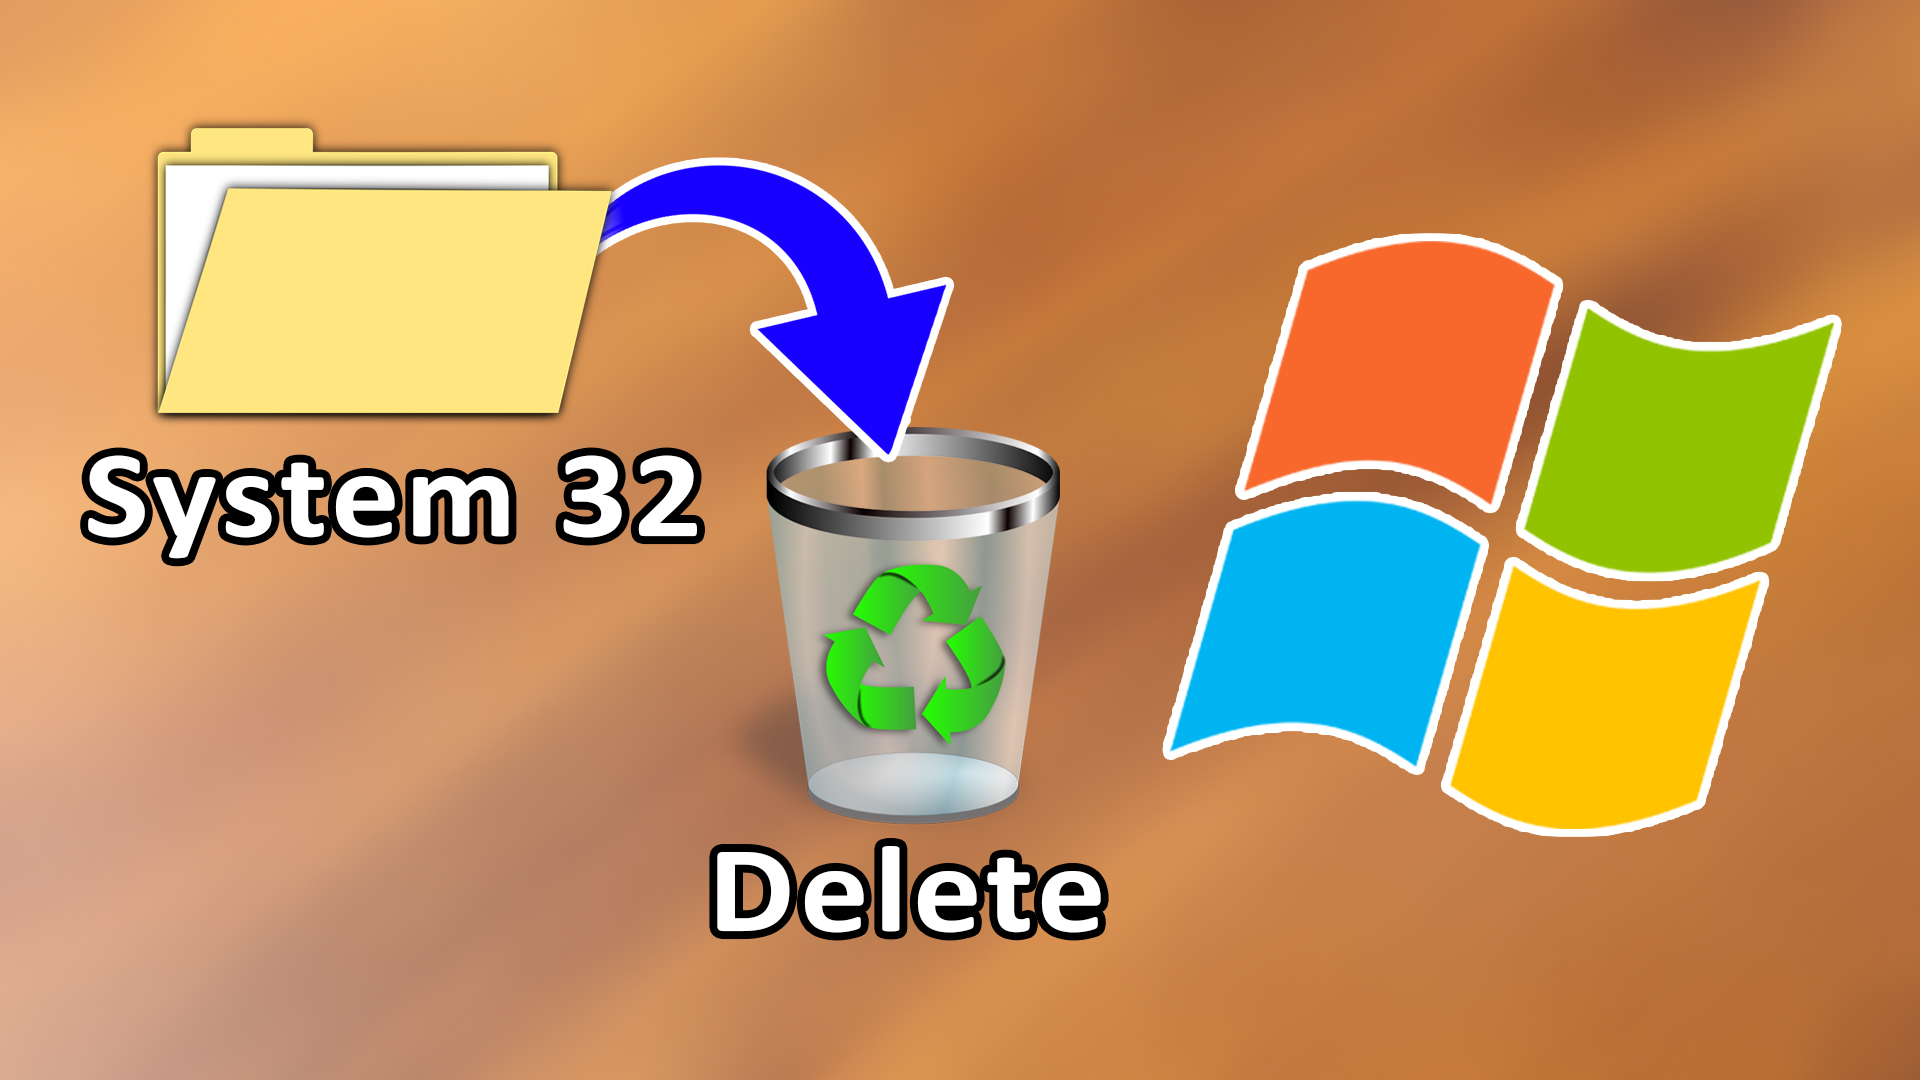 What exactly Happens If We Delete System 32 From Our Computer?